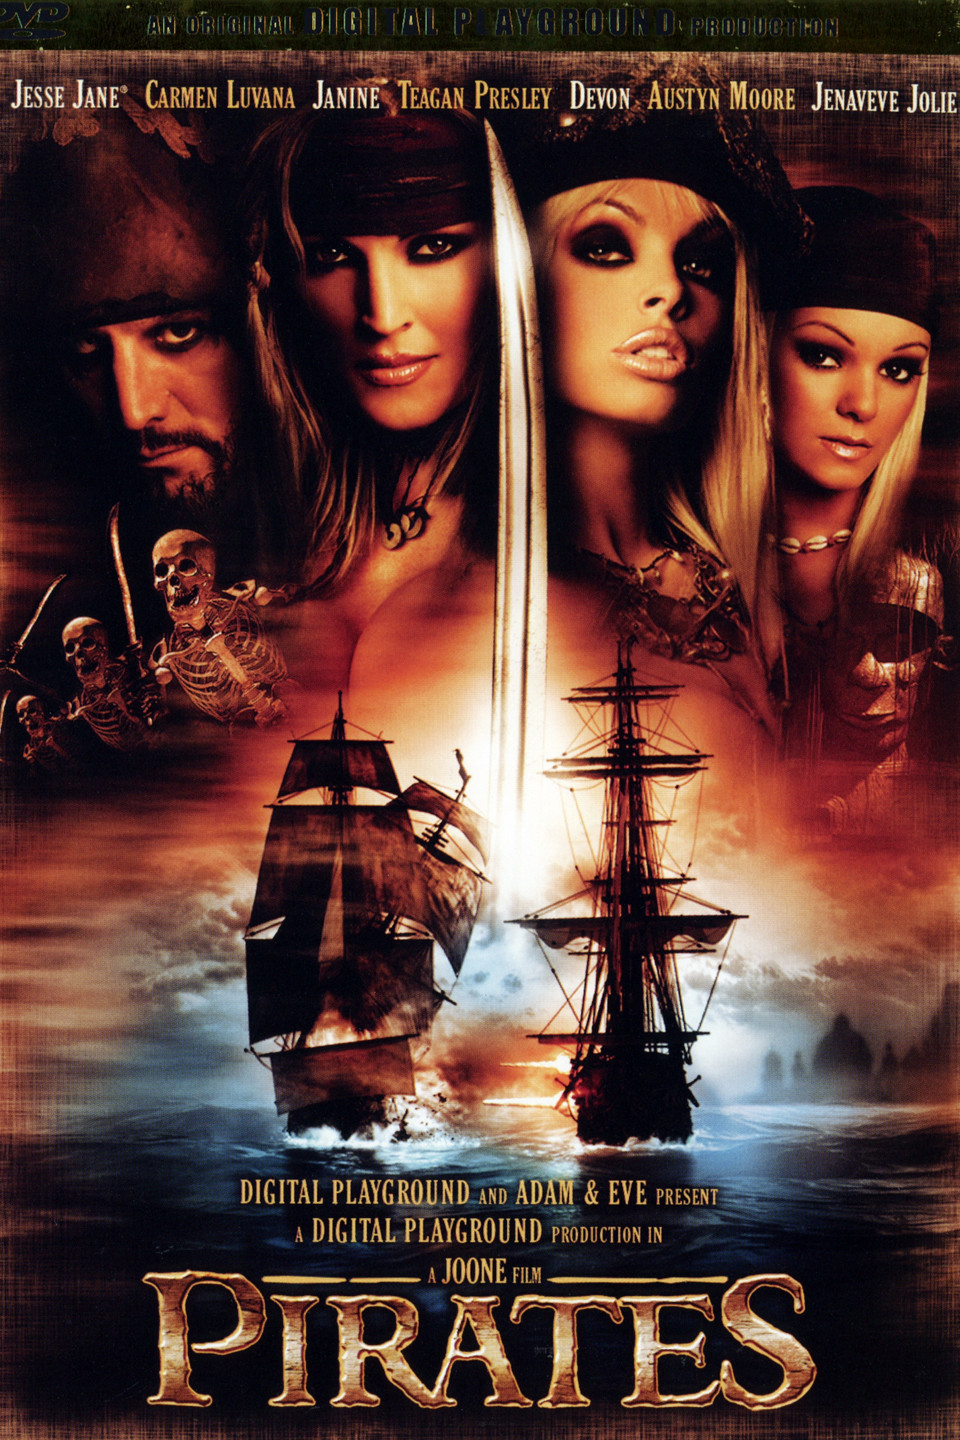 Unrated pirates xxx movie download 3gp fucks thumbs